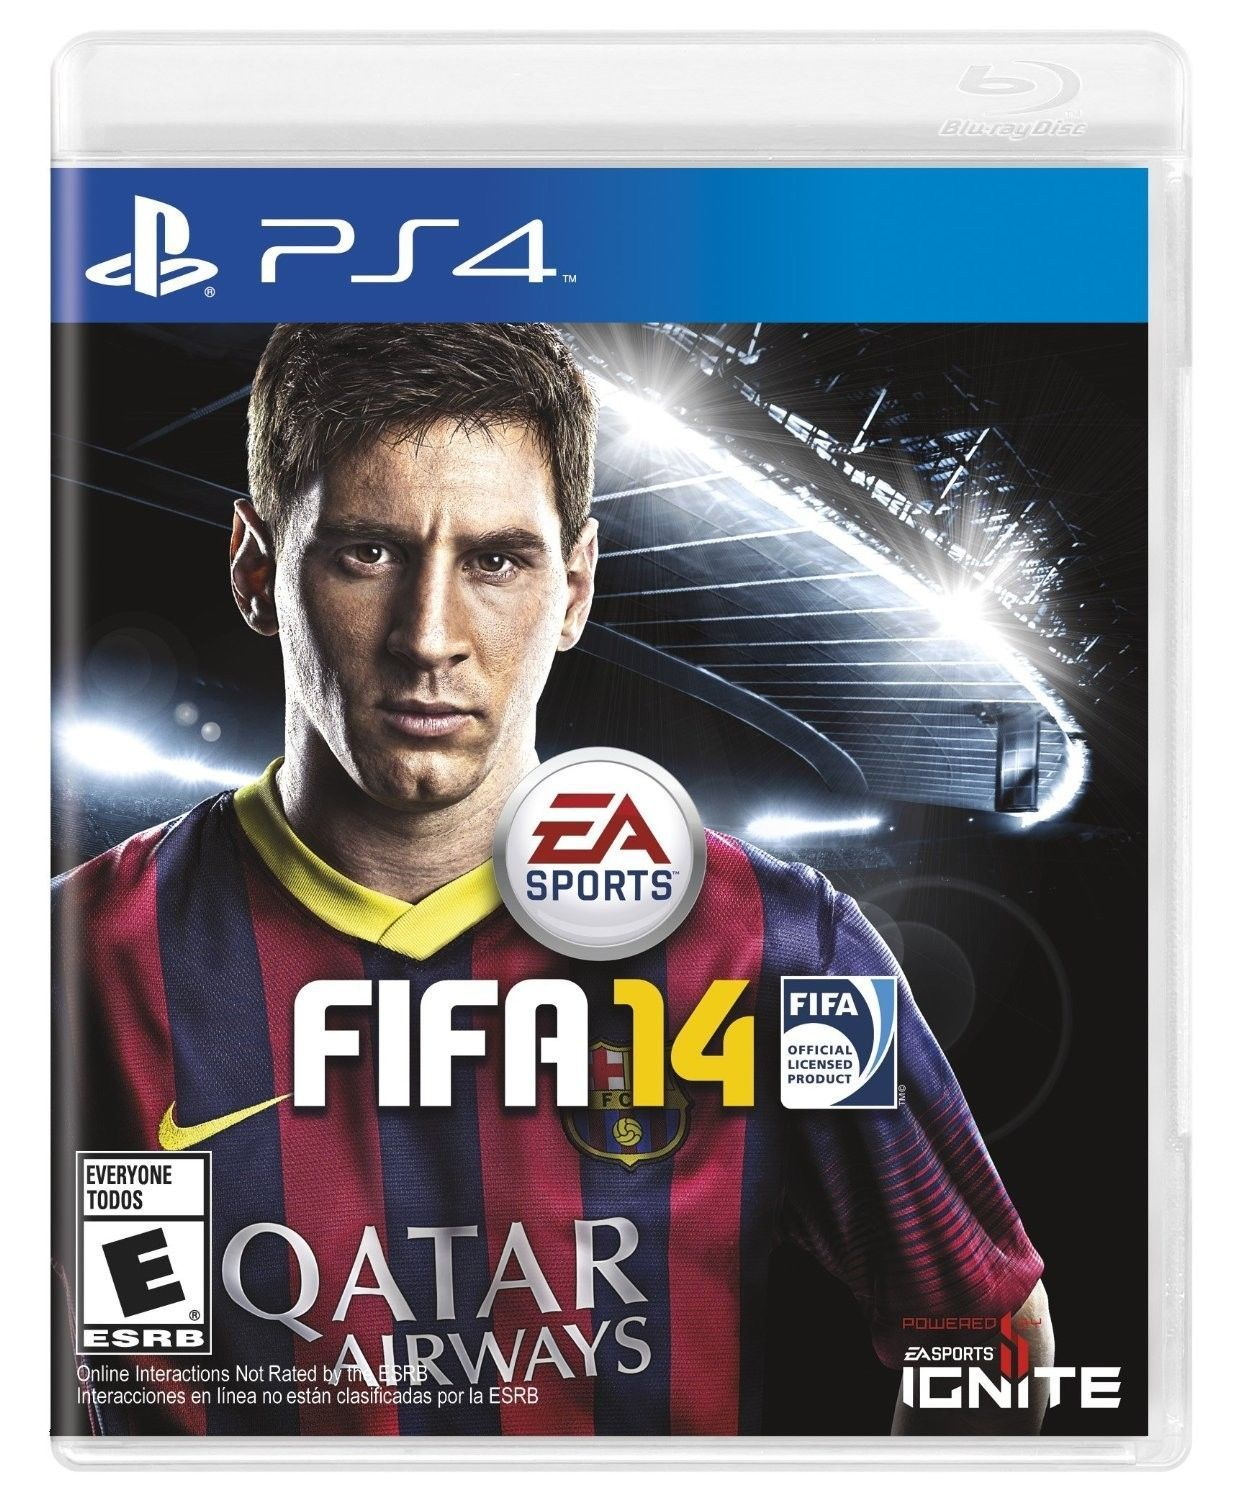 FIFA 14 (PlayStation 4) Soccer Video Game PS4 [New]